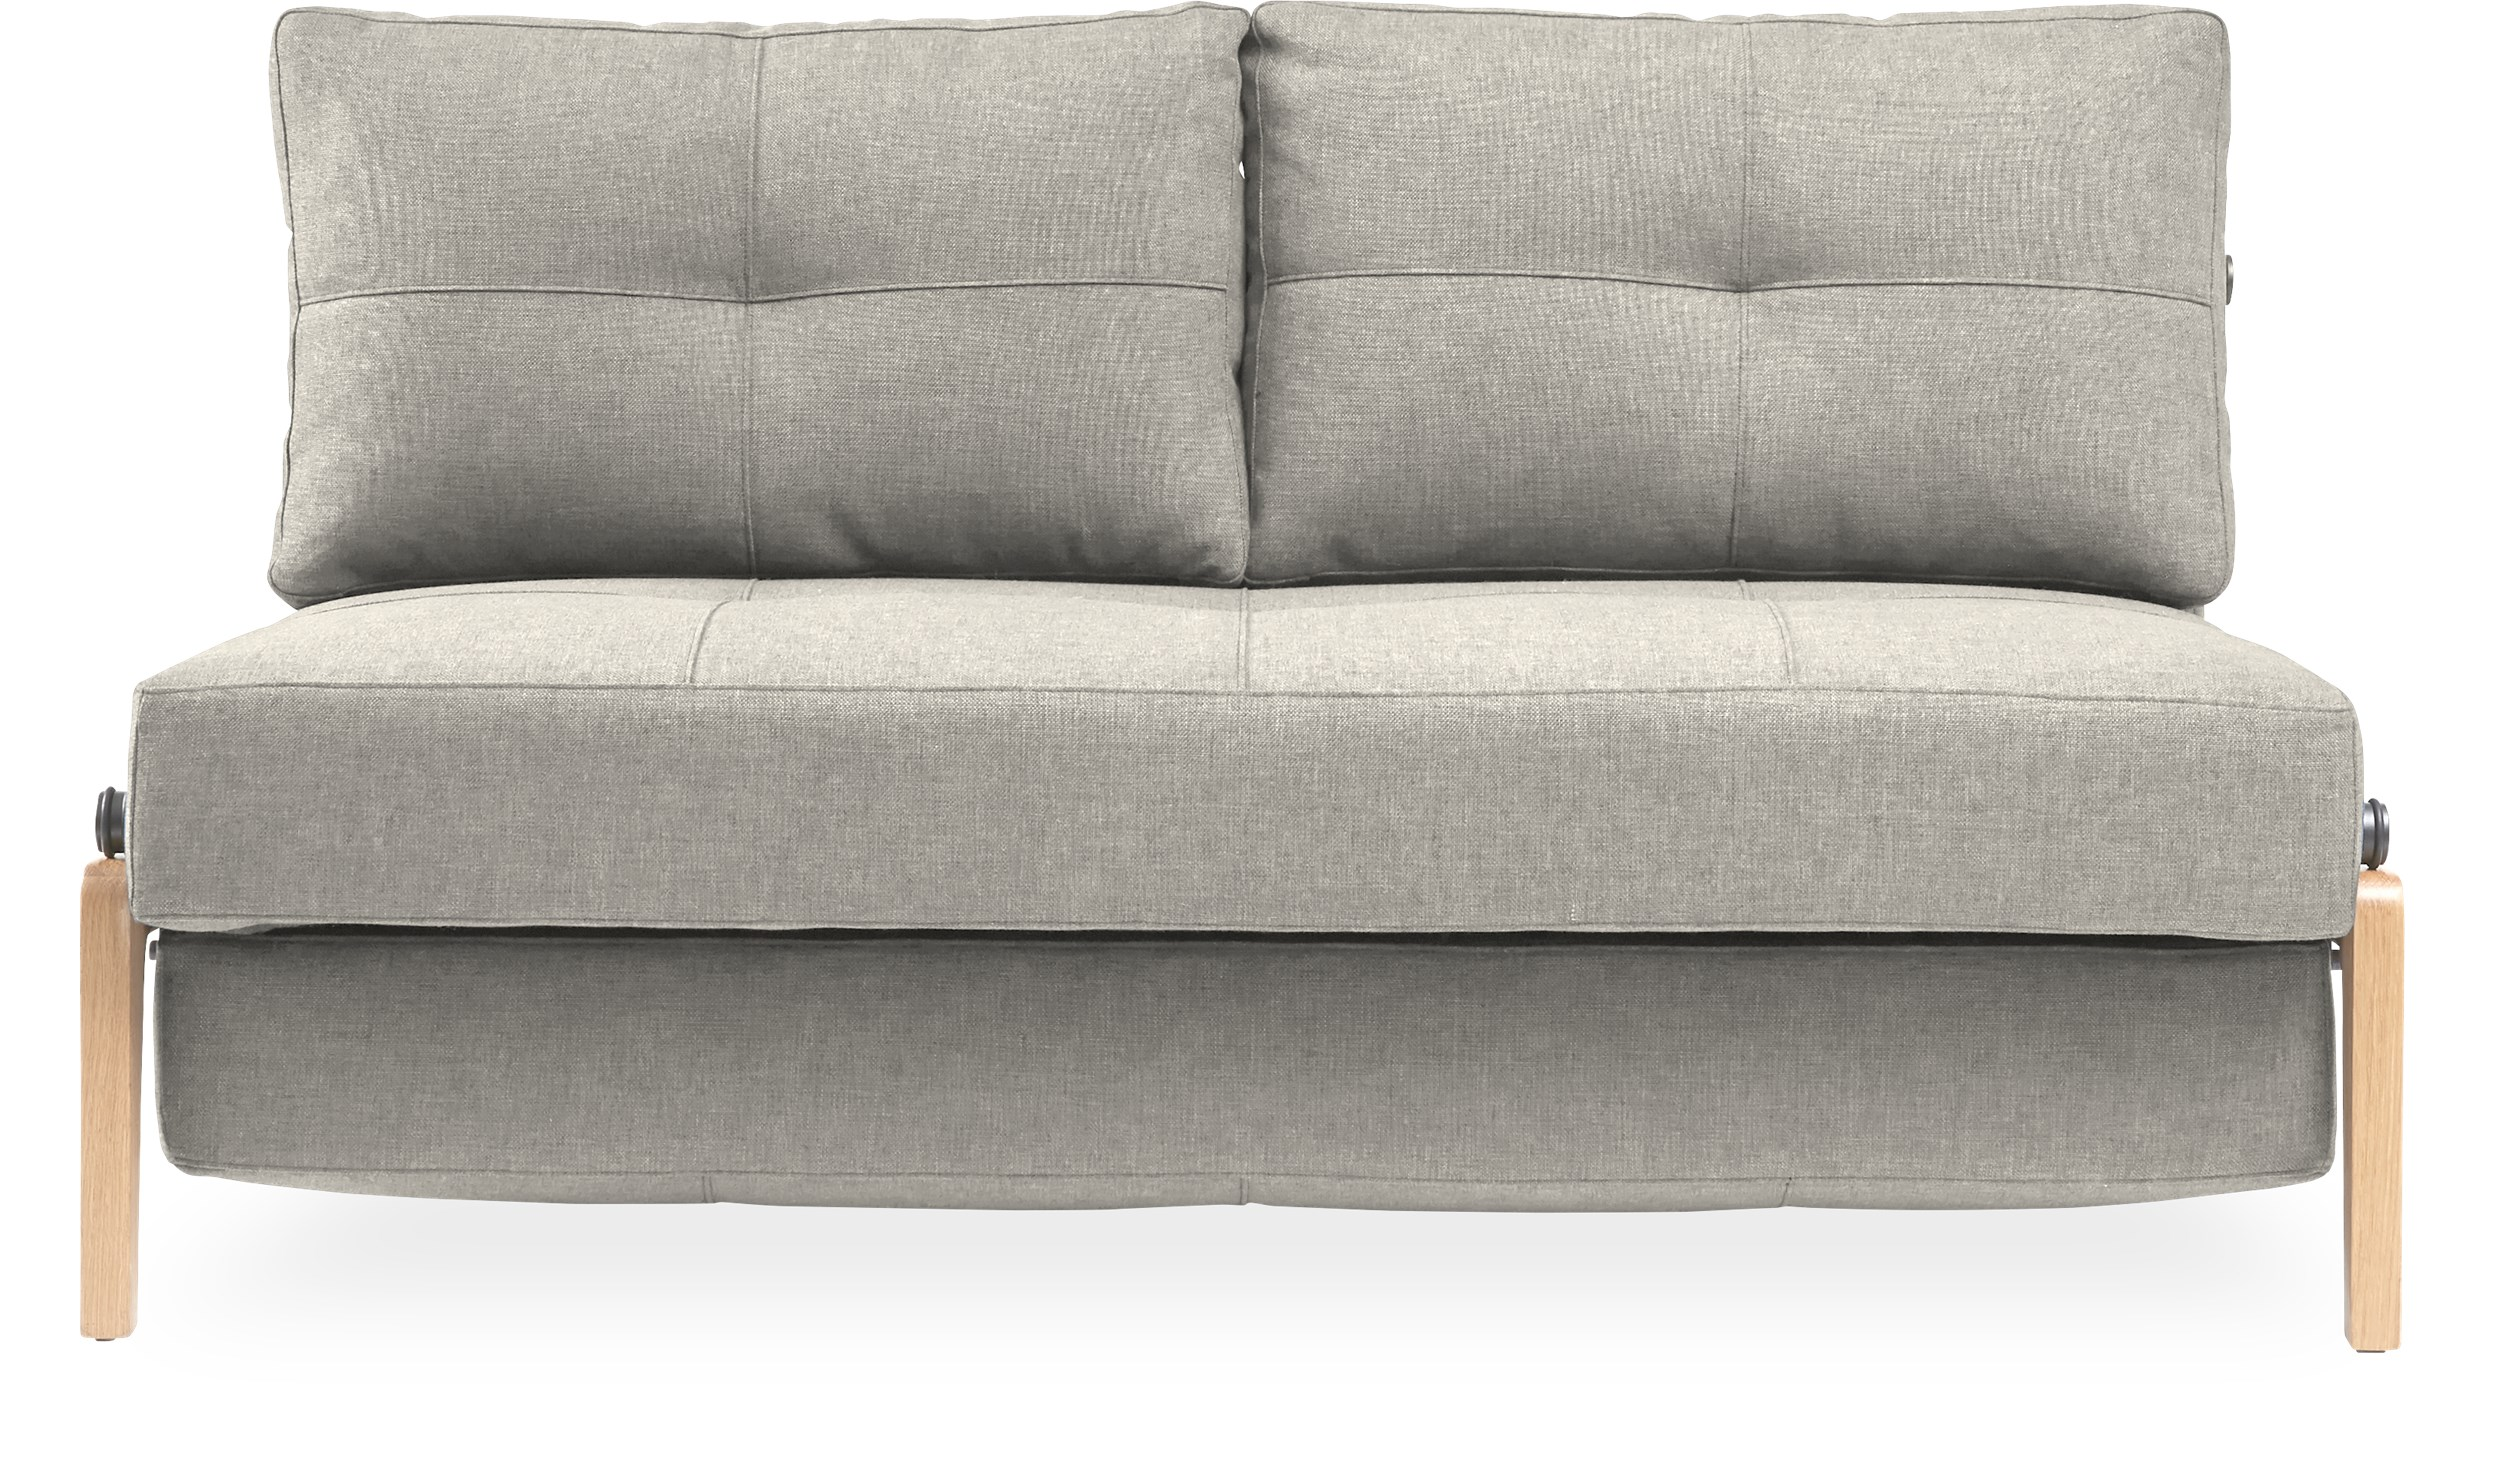 Innovation Living - Cubed Wood Sovesofa - Linen 612 Sand Grey stof og ben i massiv lakeret eg